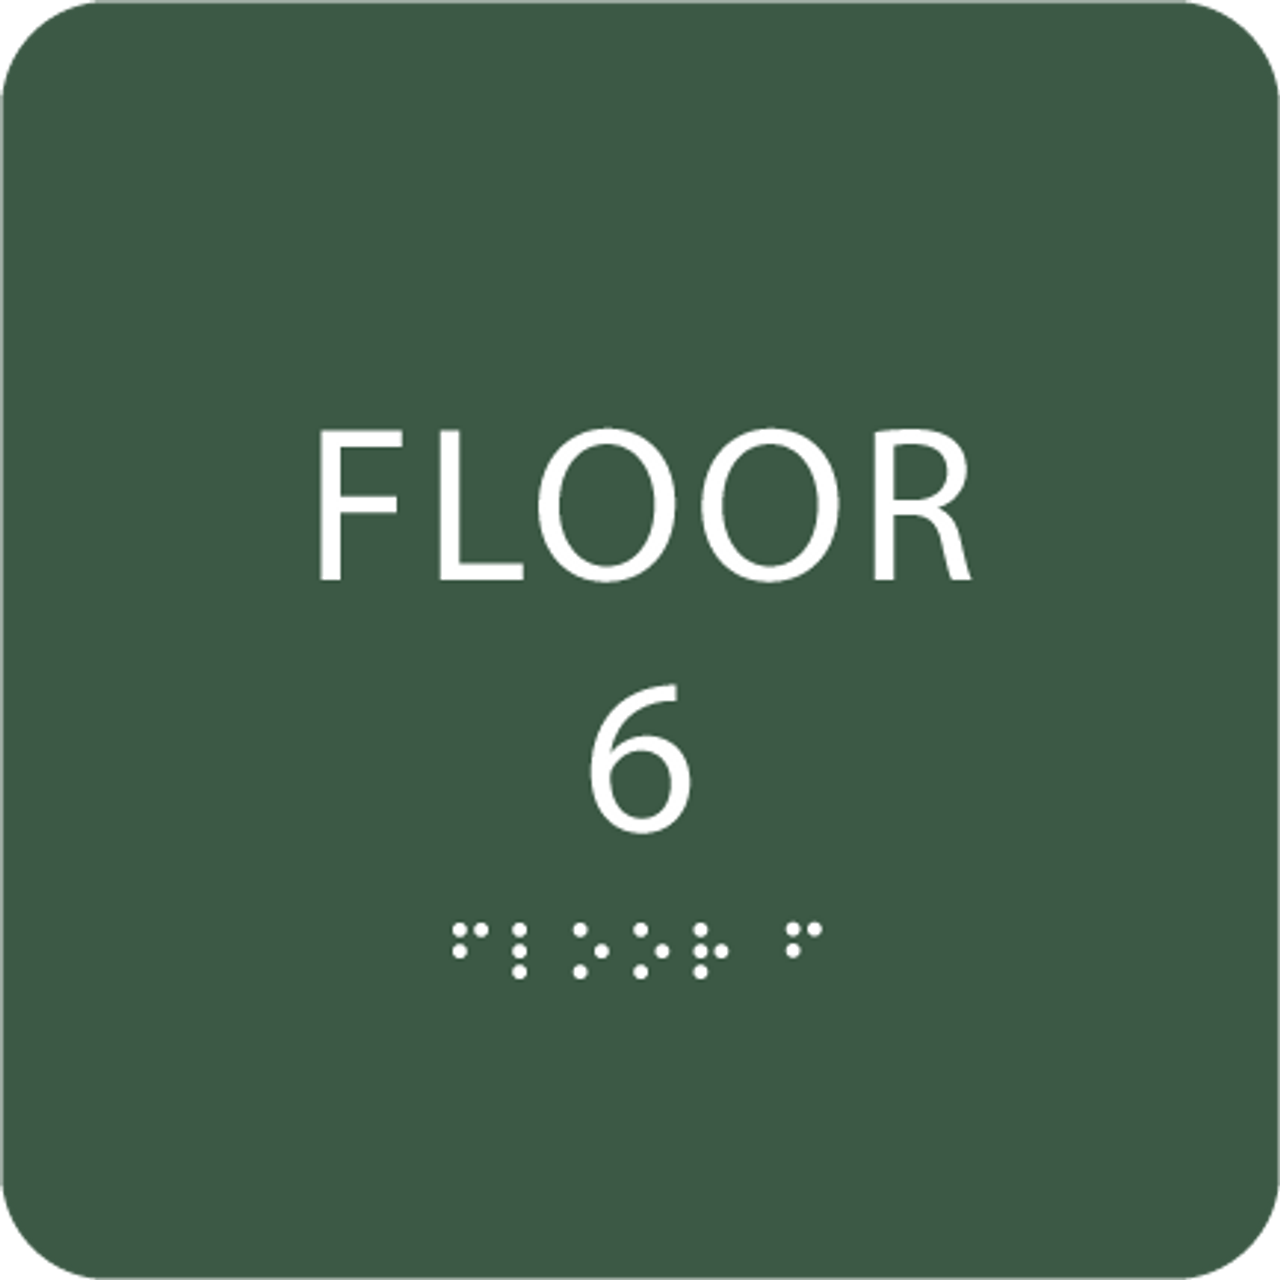 Green Floor 6 Number Identification ADA Sign